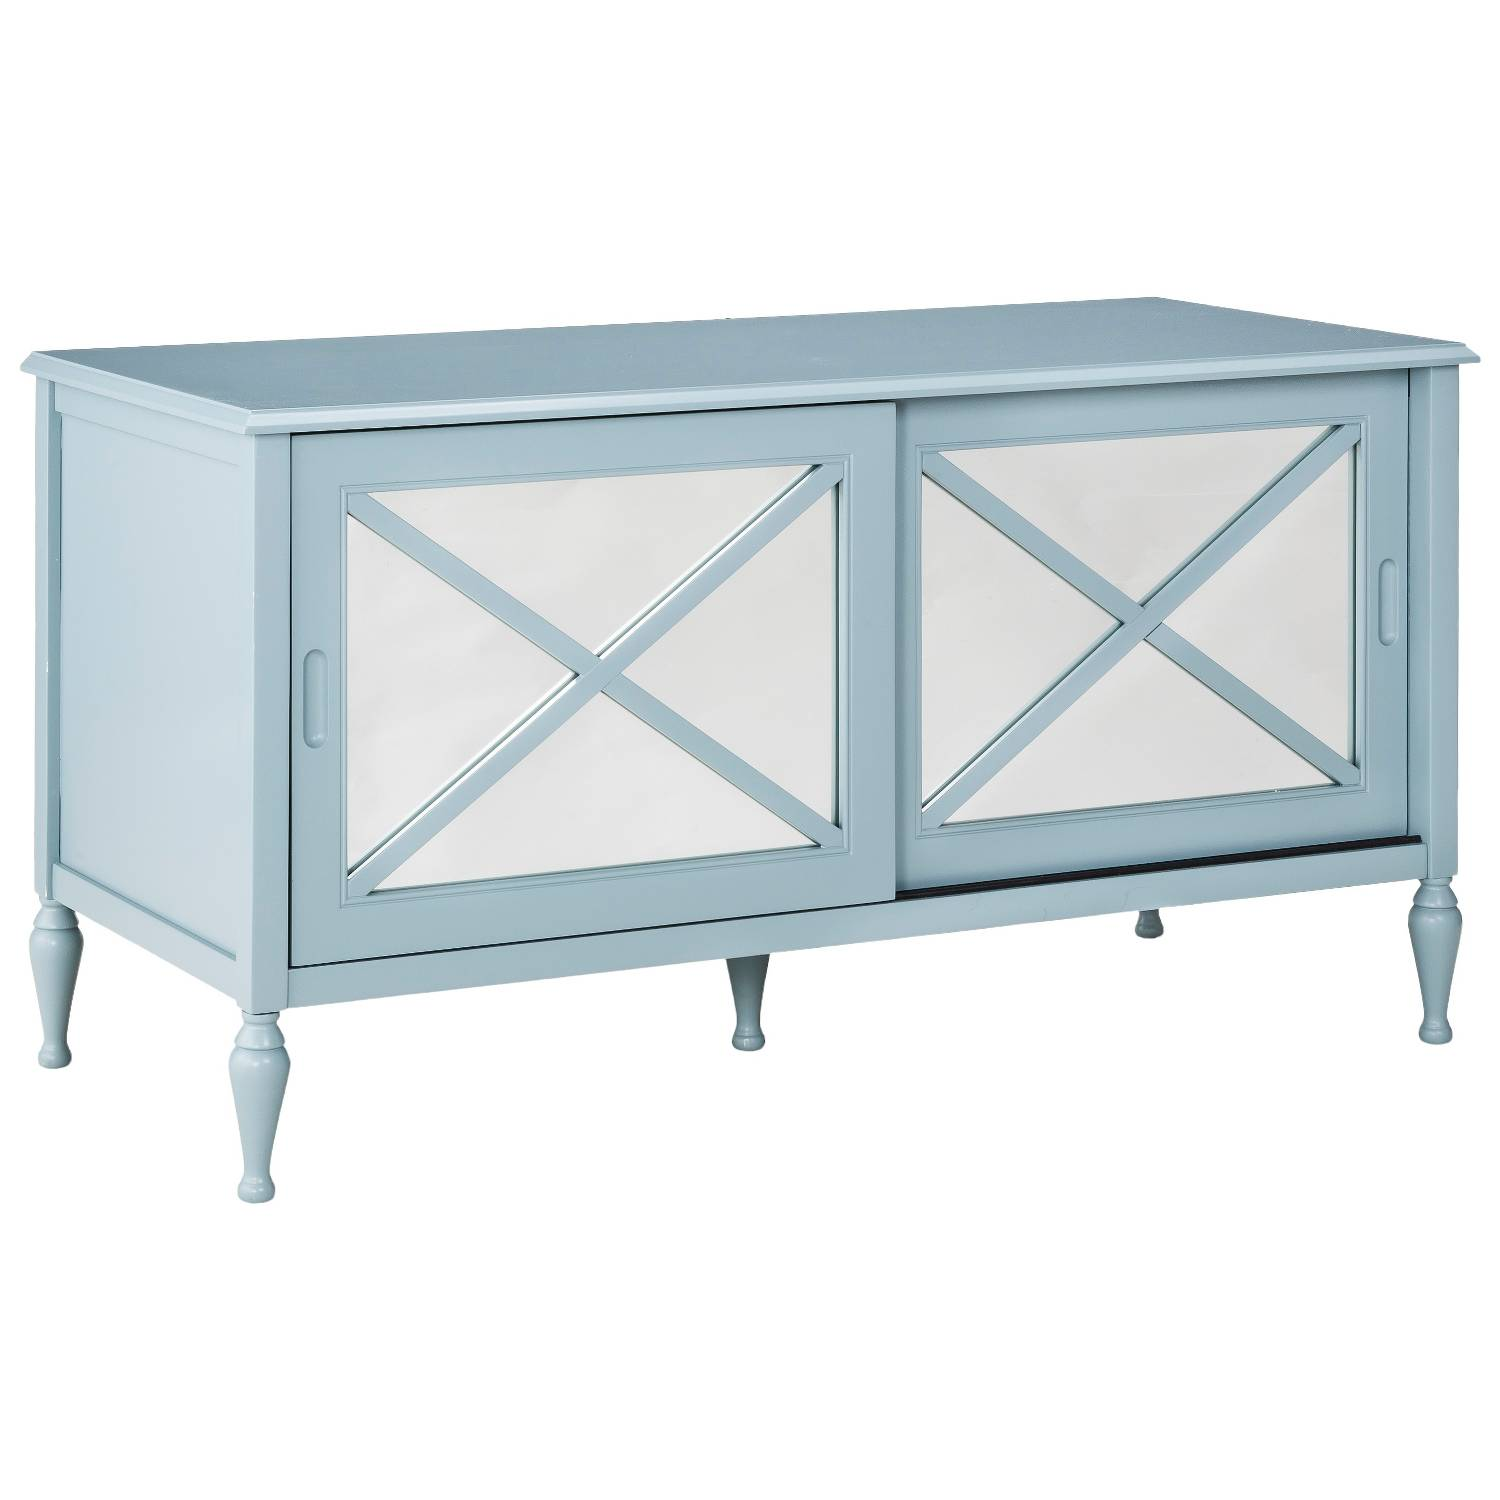 Target 114 98 Reg 229 99 Hollywood Mirrored 48 Tv Stand In